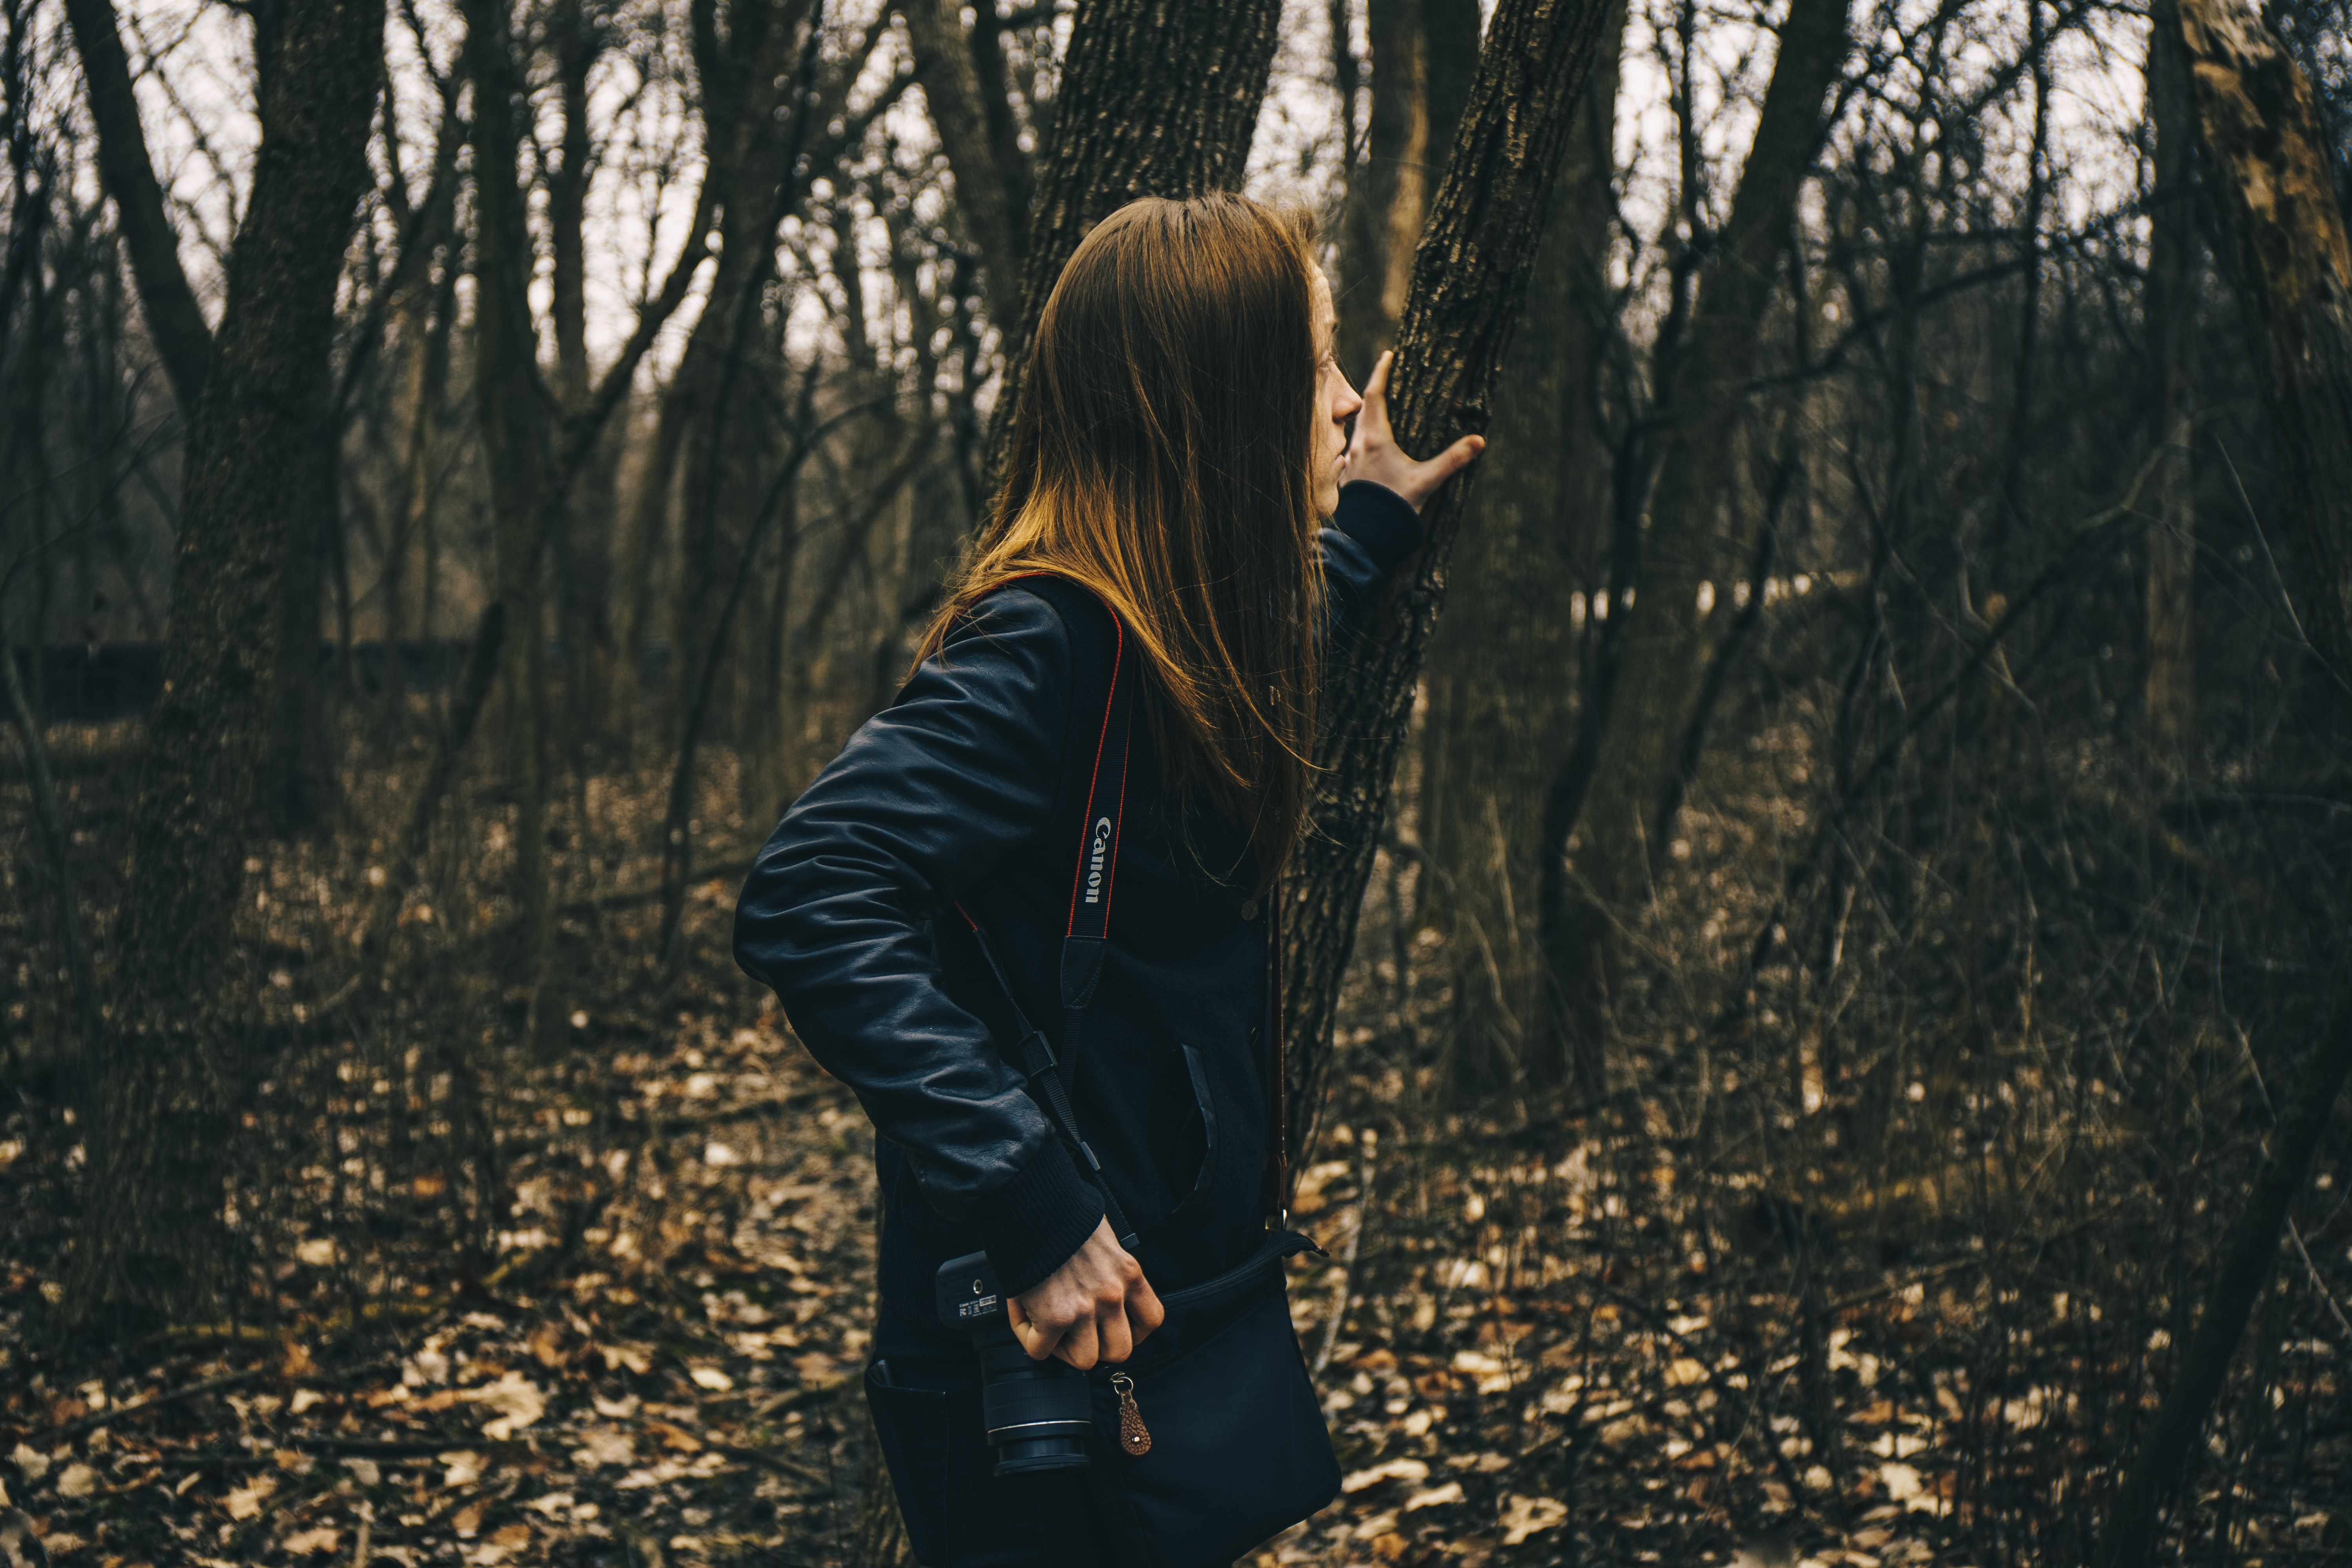 woman in forest holding tree